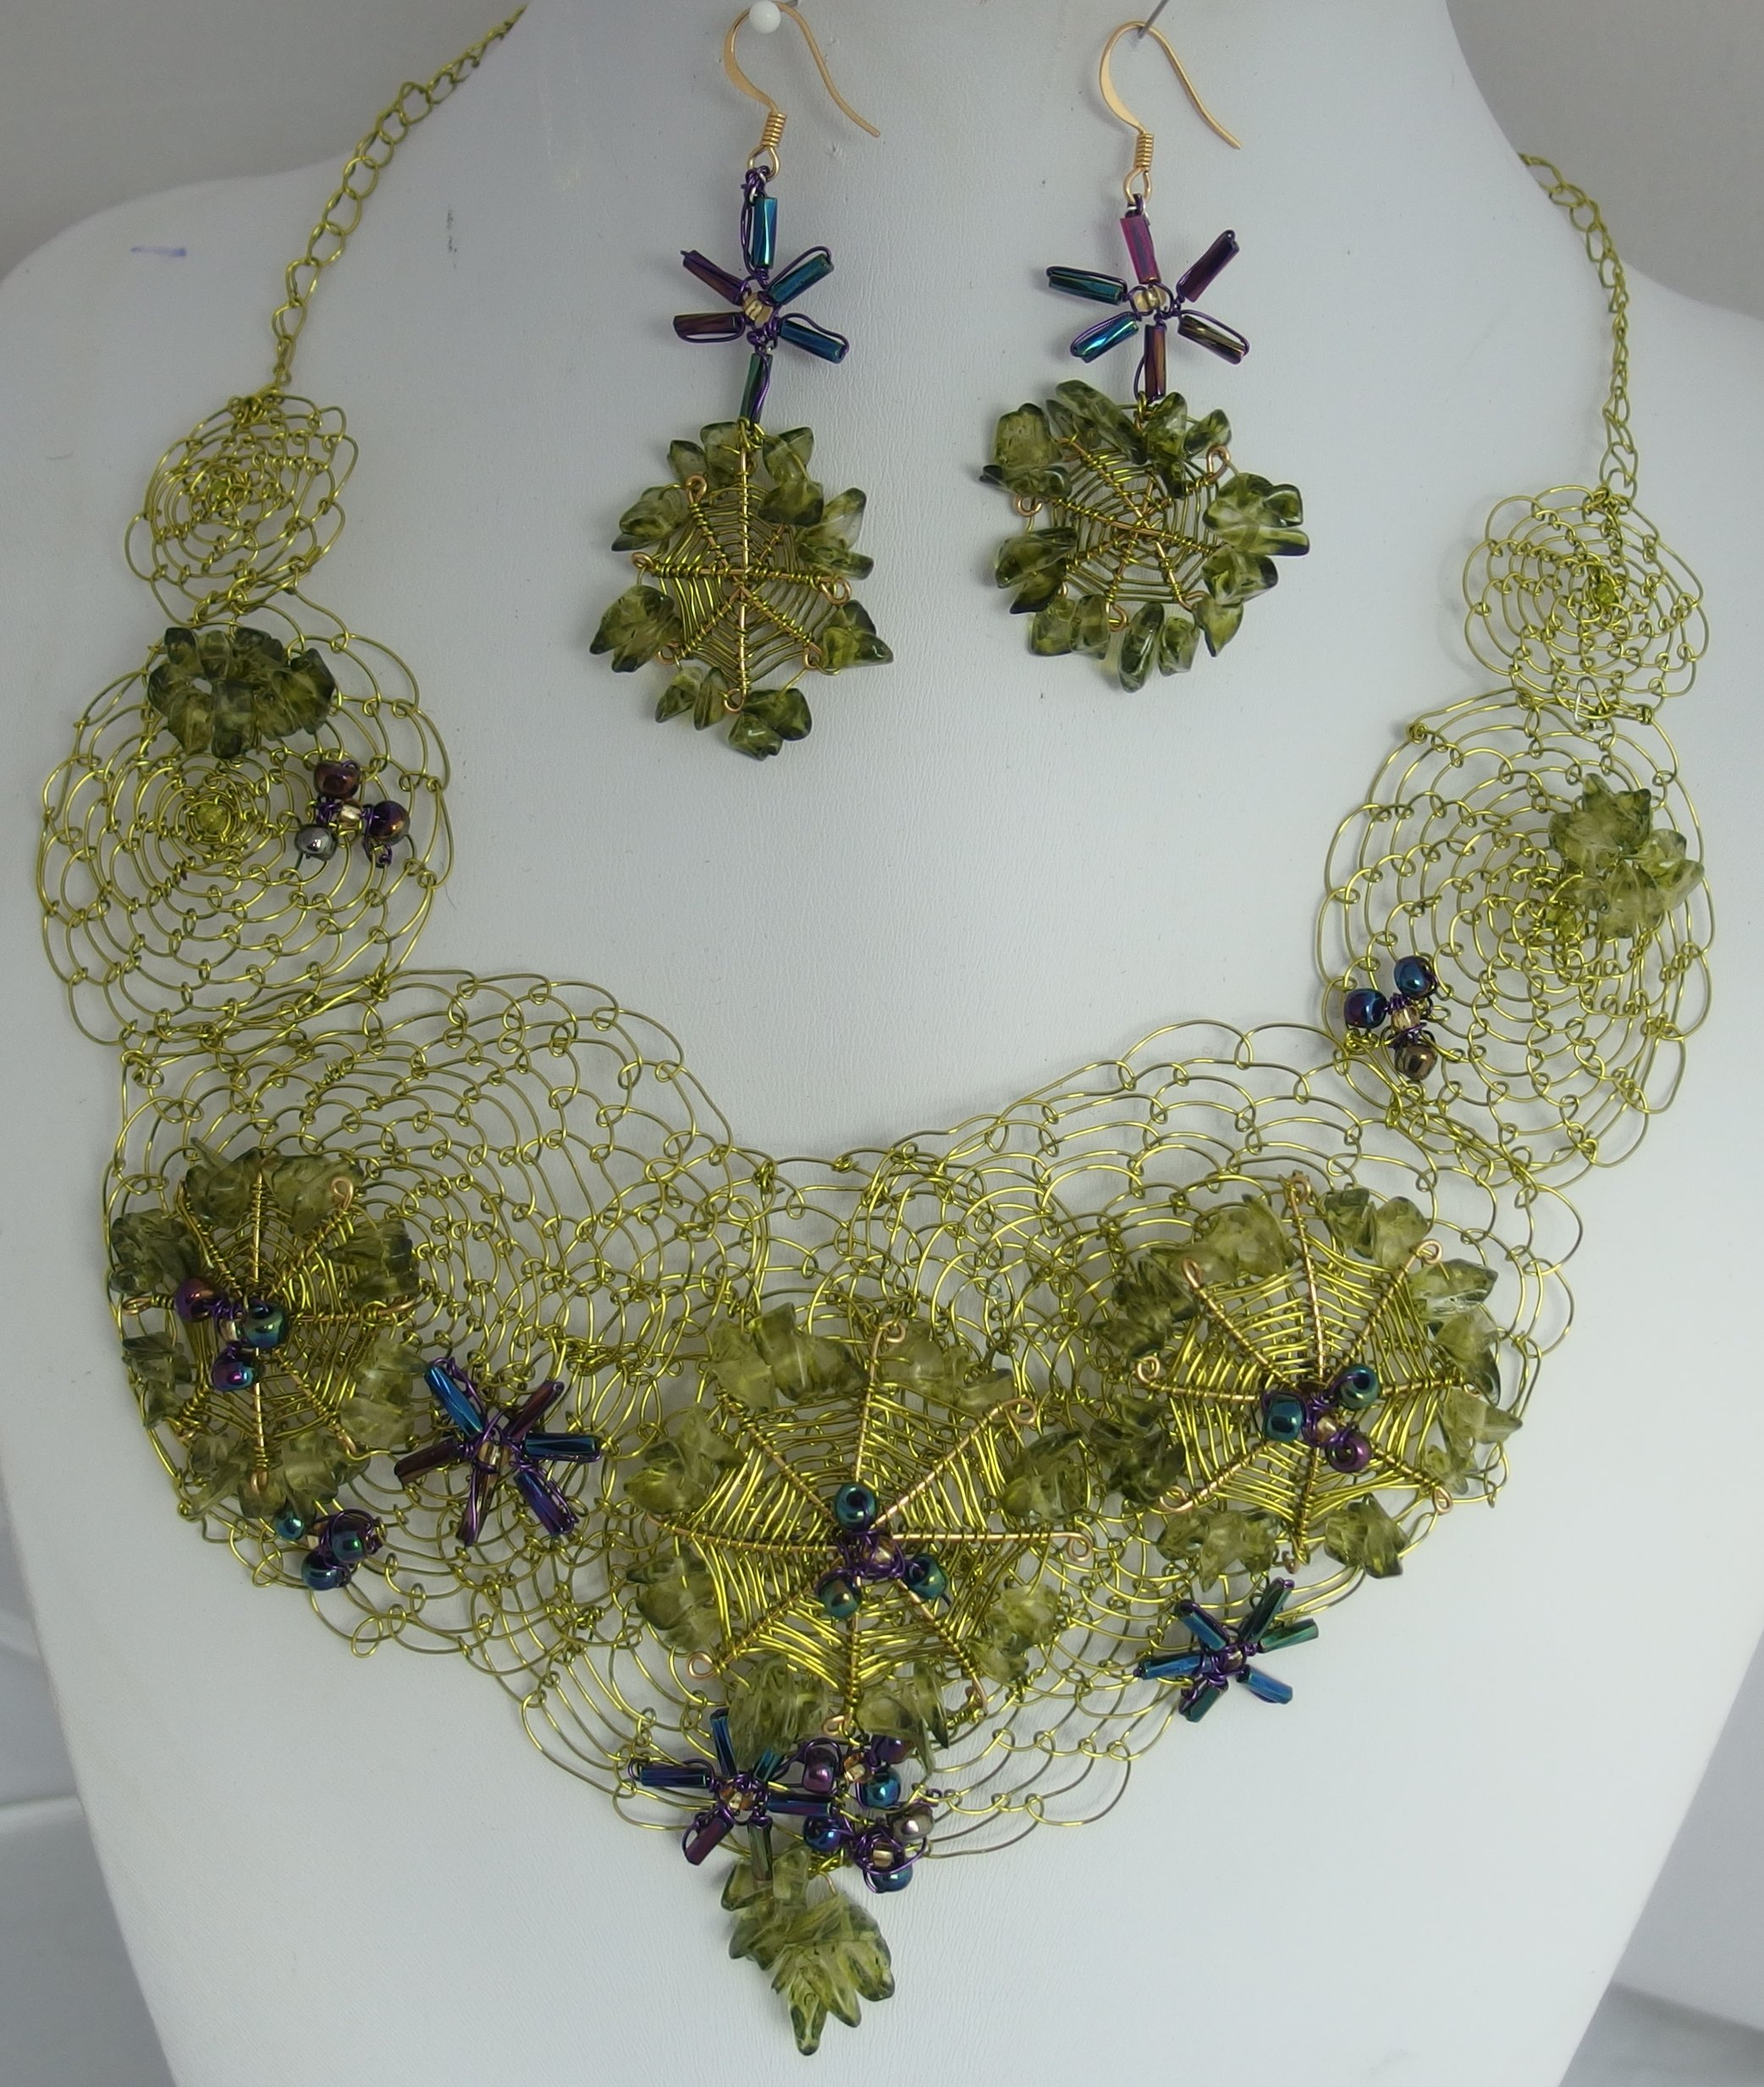 Necklace and earings by Mary Hedges